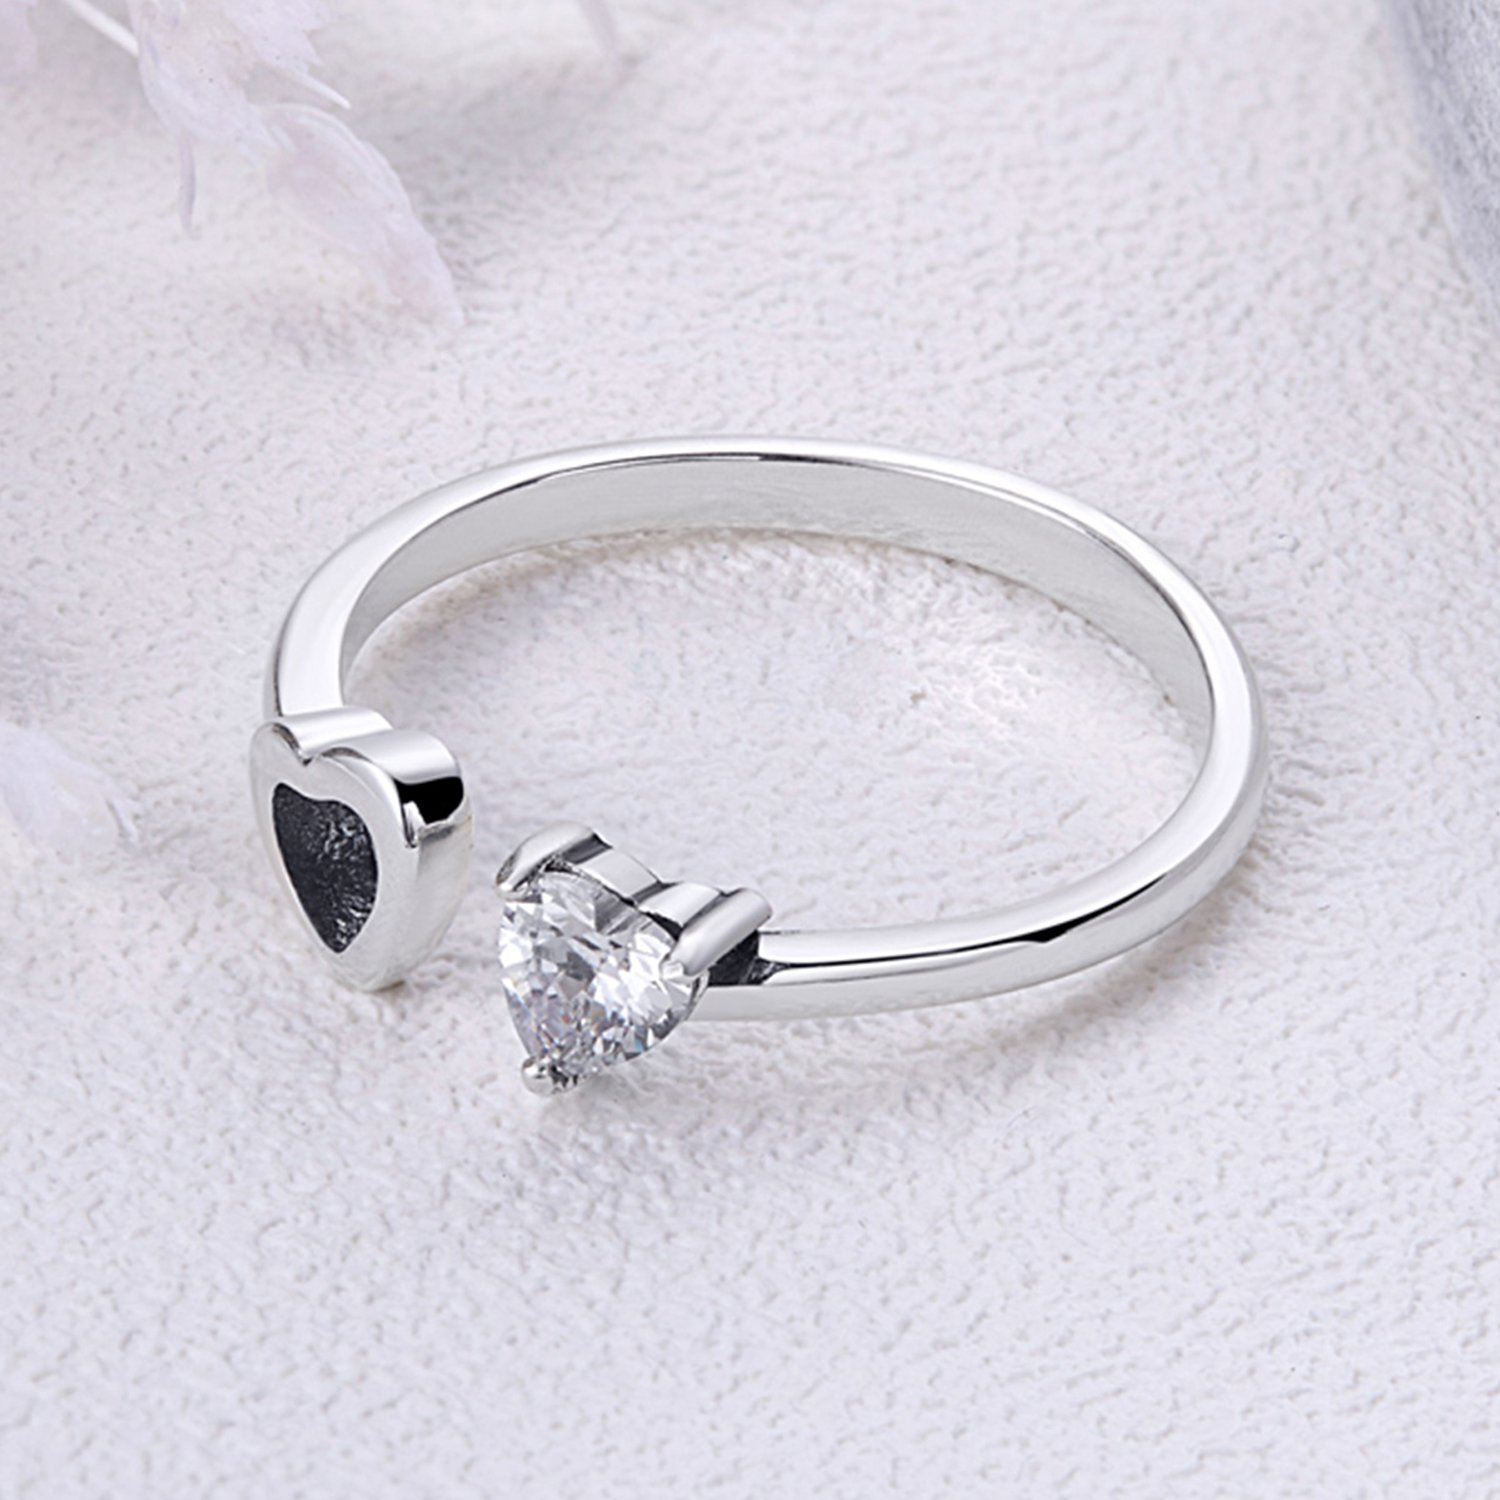 925-Sterling-Silver-Love-Heart-White-Birthstone-CZ-Ring-Expandable-Open-Rings-Adjustable-Women-Jewelry